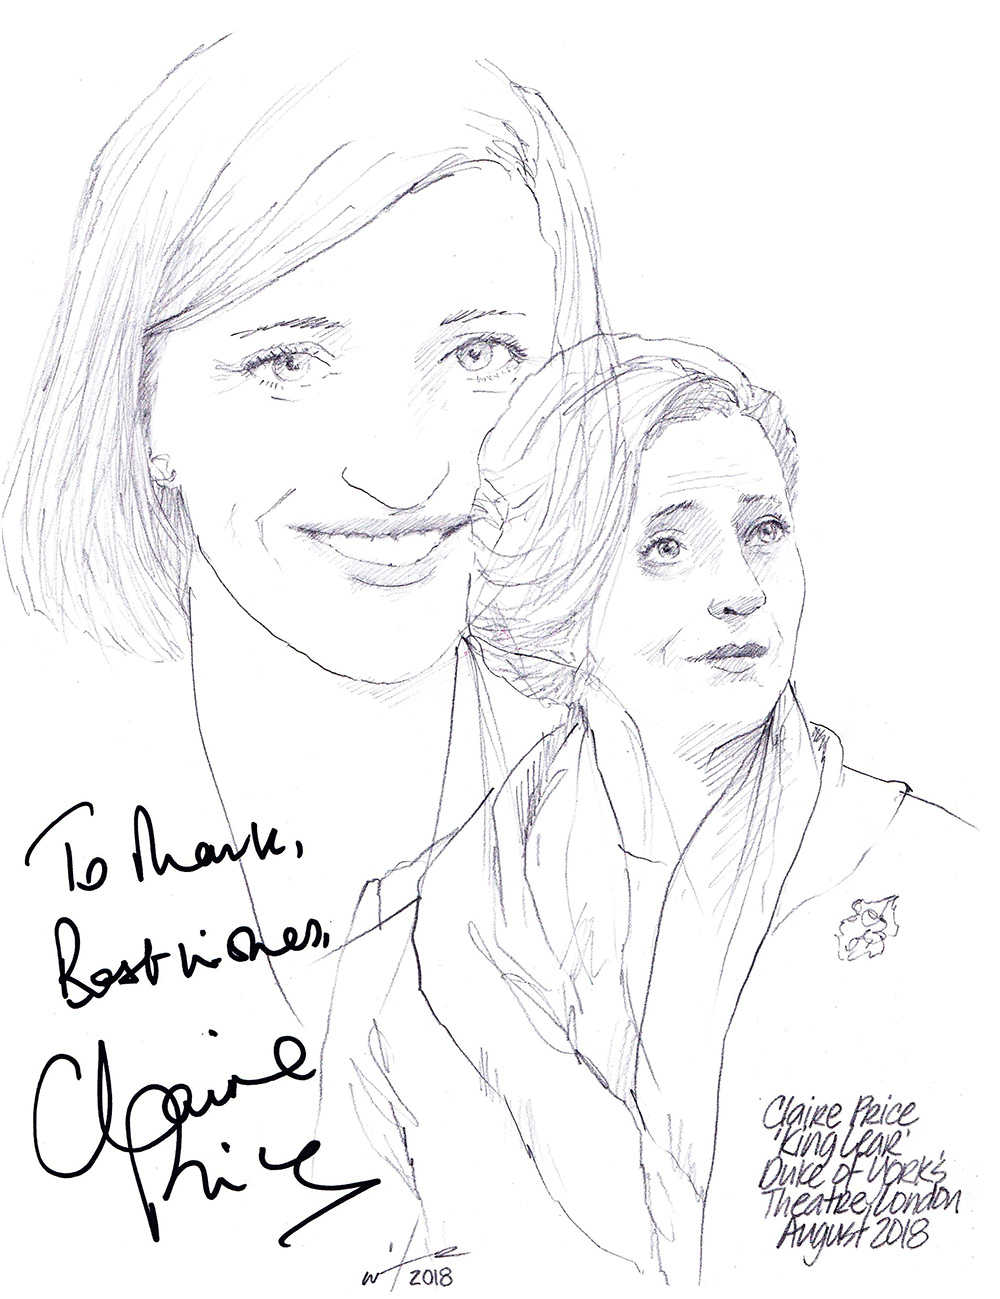 Autographed drawing of Claire Price in King Lear at the Duke of York's Theatre on London's West End